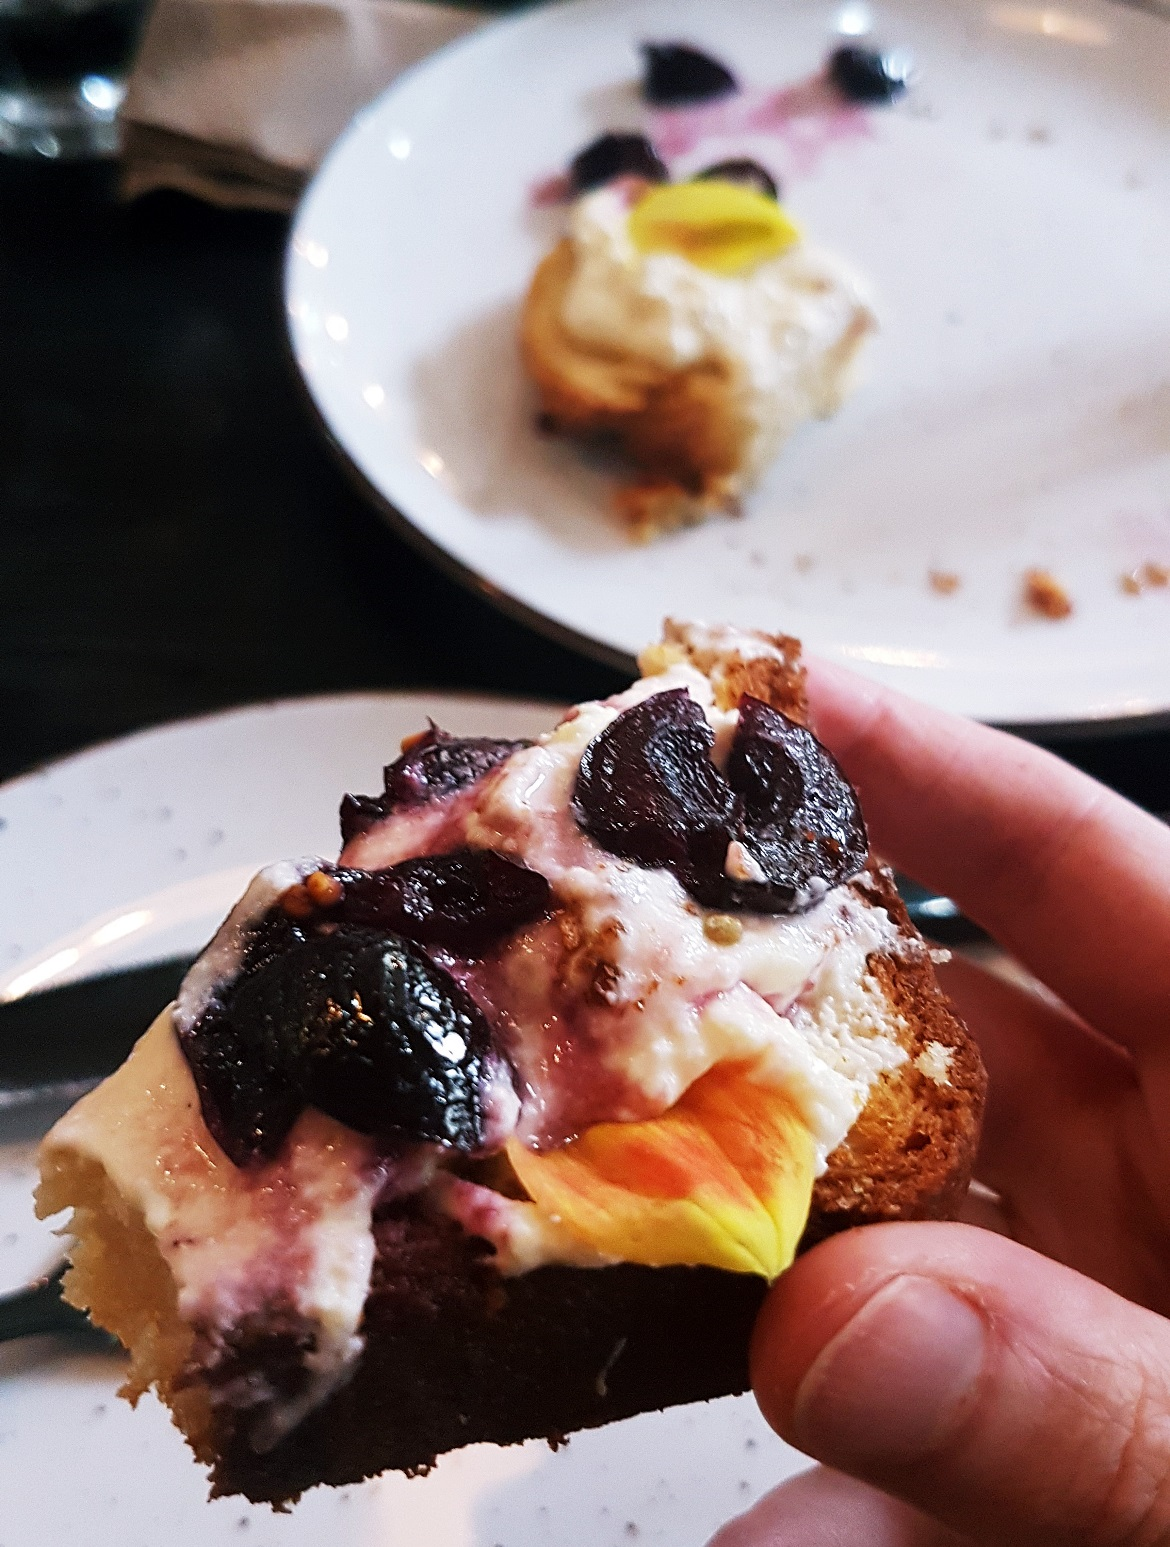 Vanilla cherries and ricotta on brioche - Review of North Star Coffee Shop by BeckyBecky Blogs